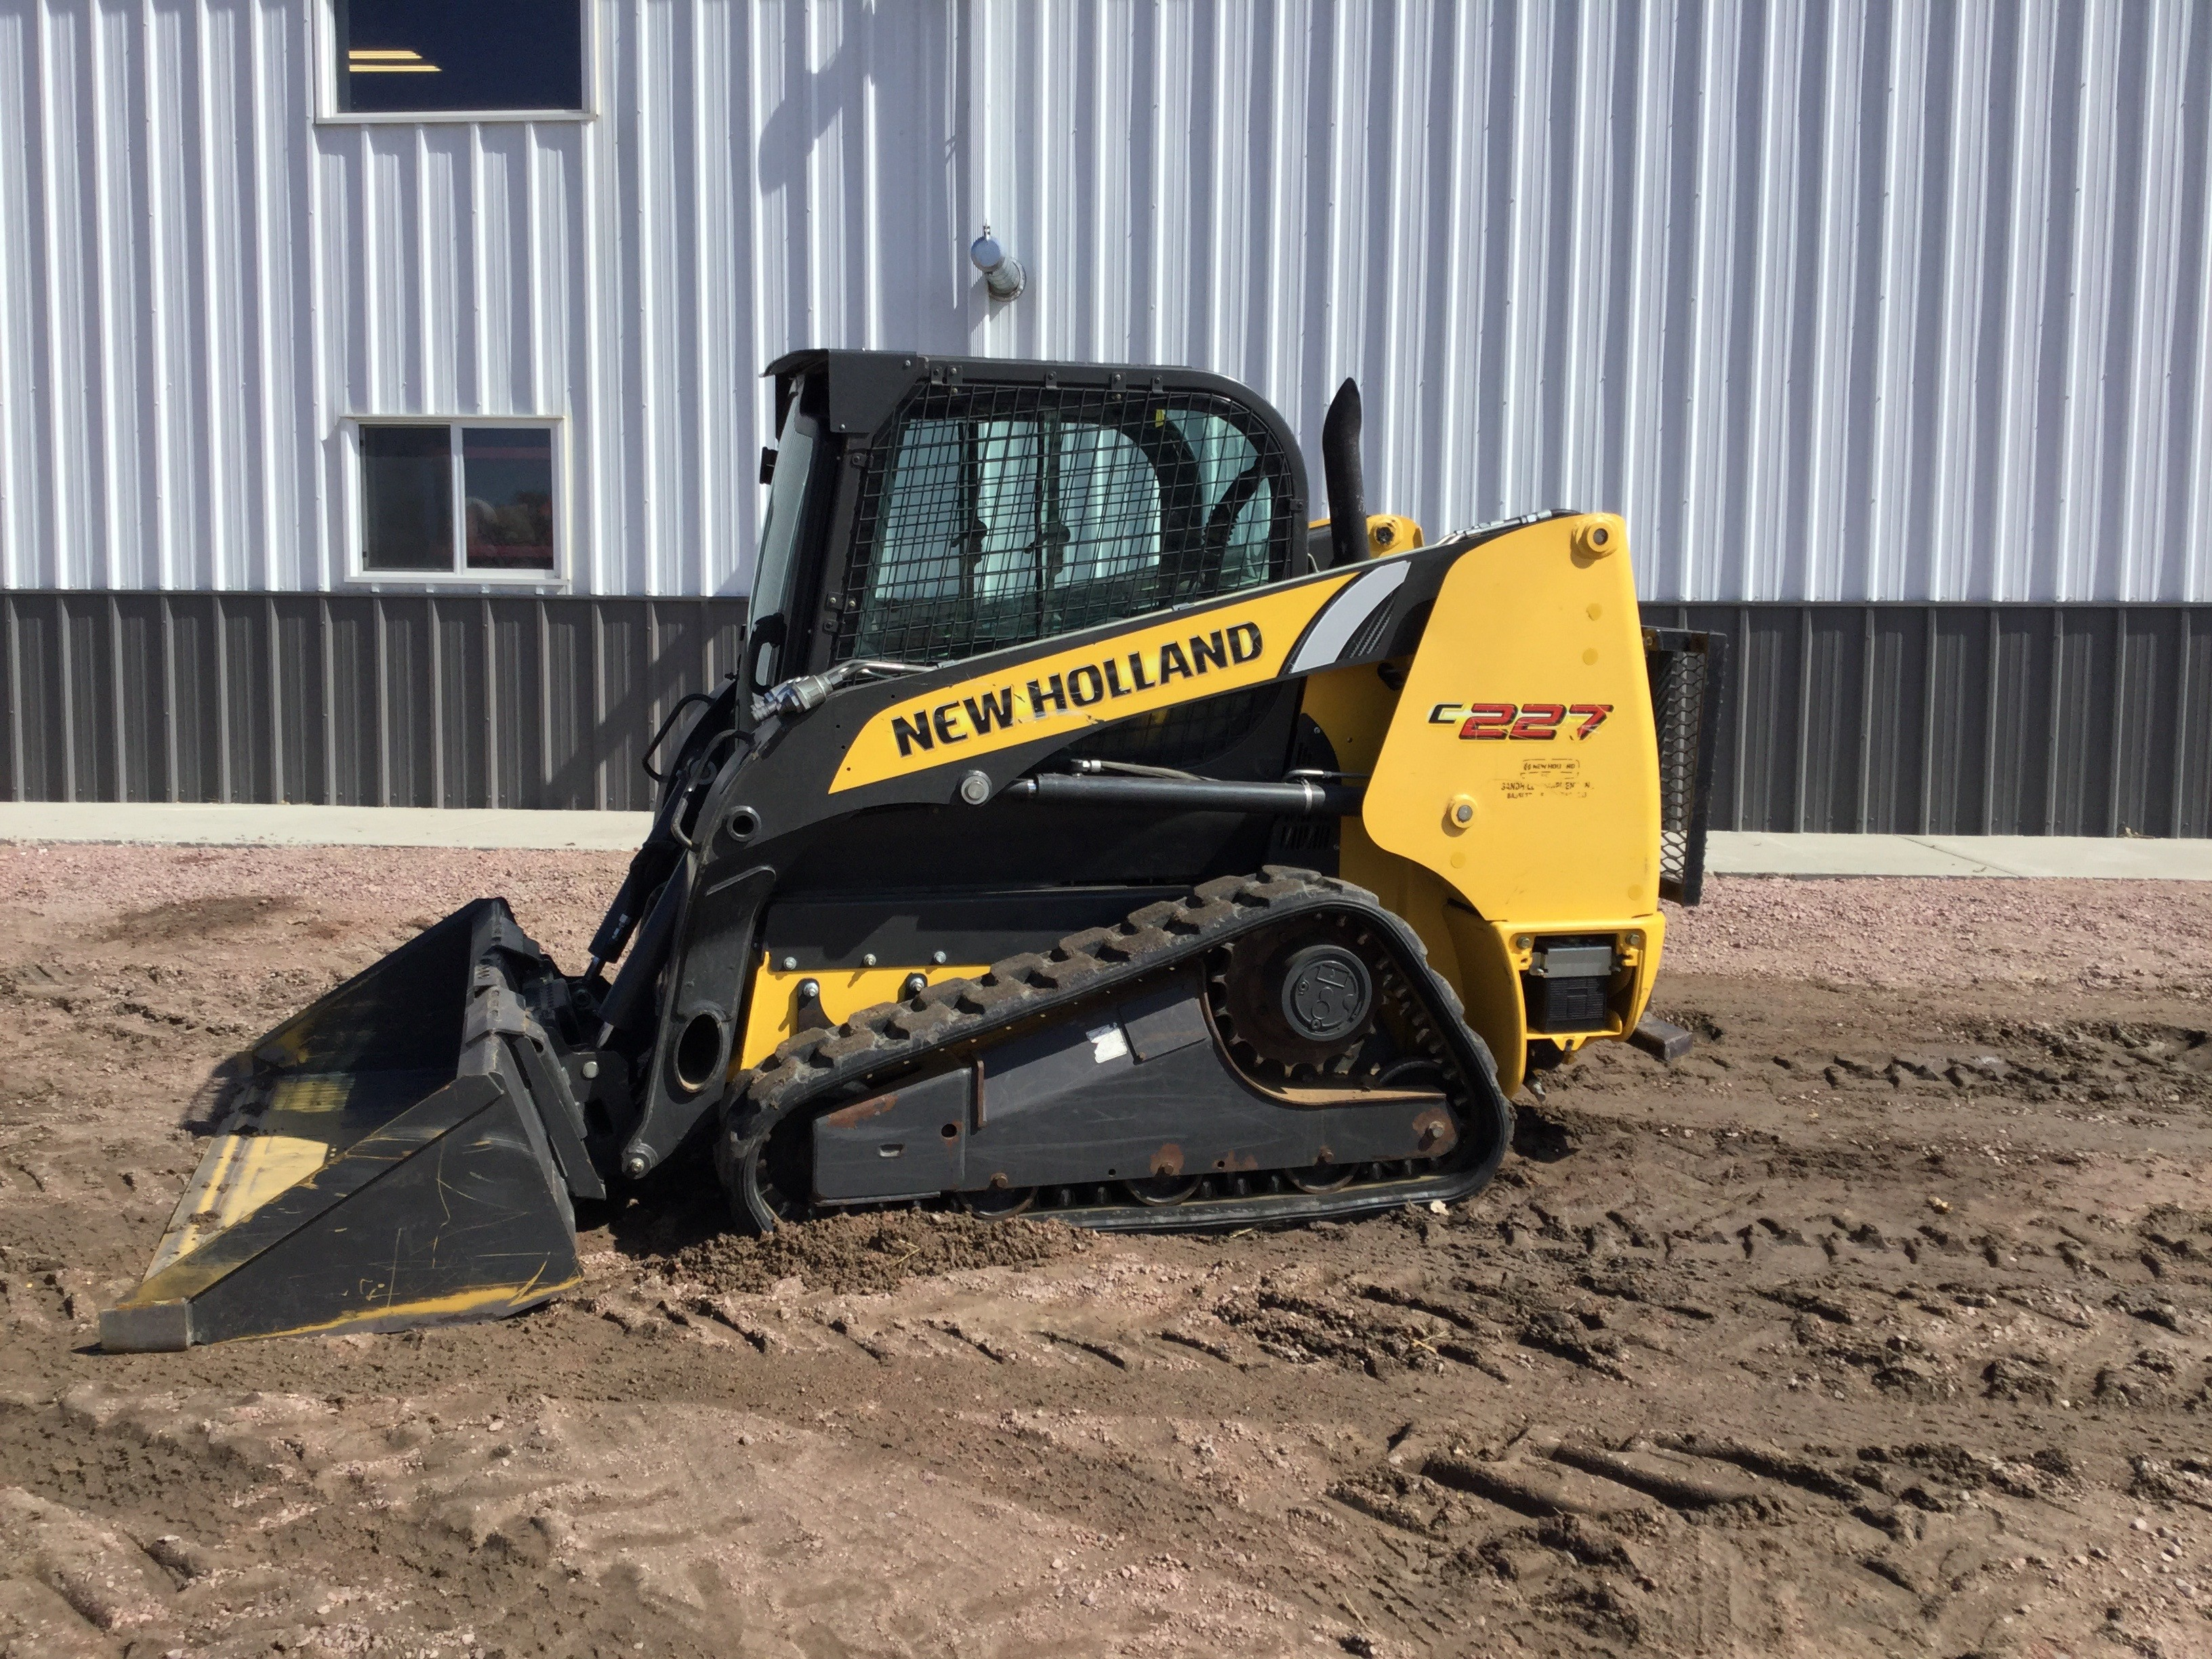 2012 New Holland Construction C227